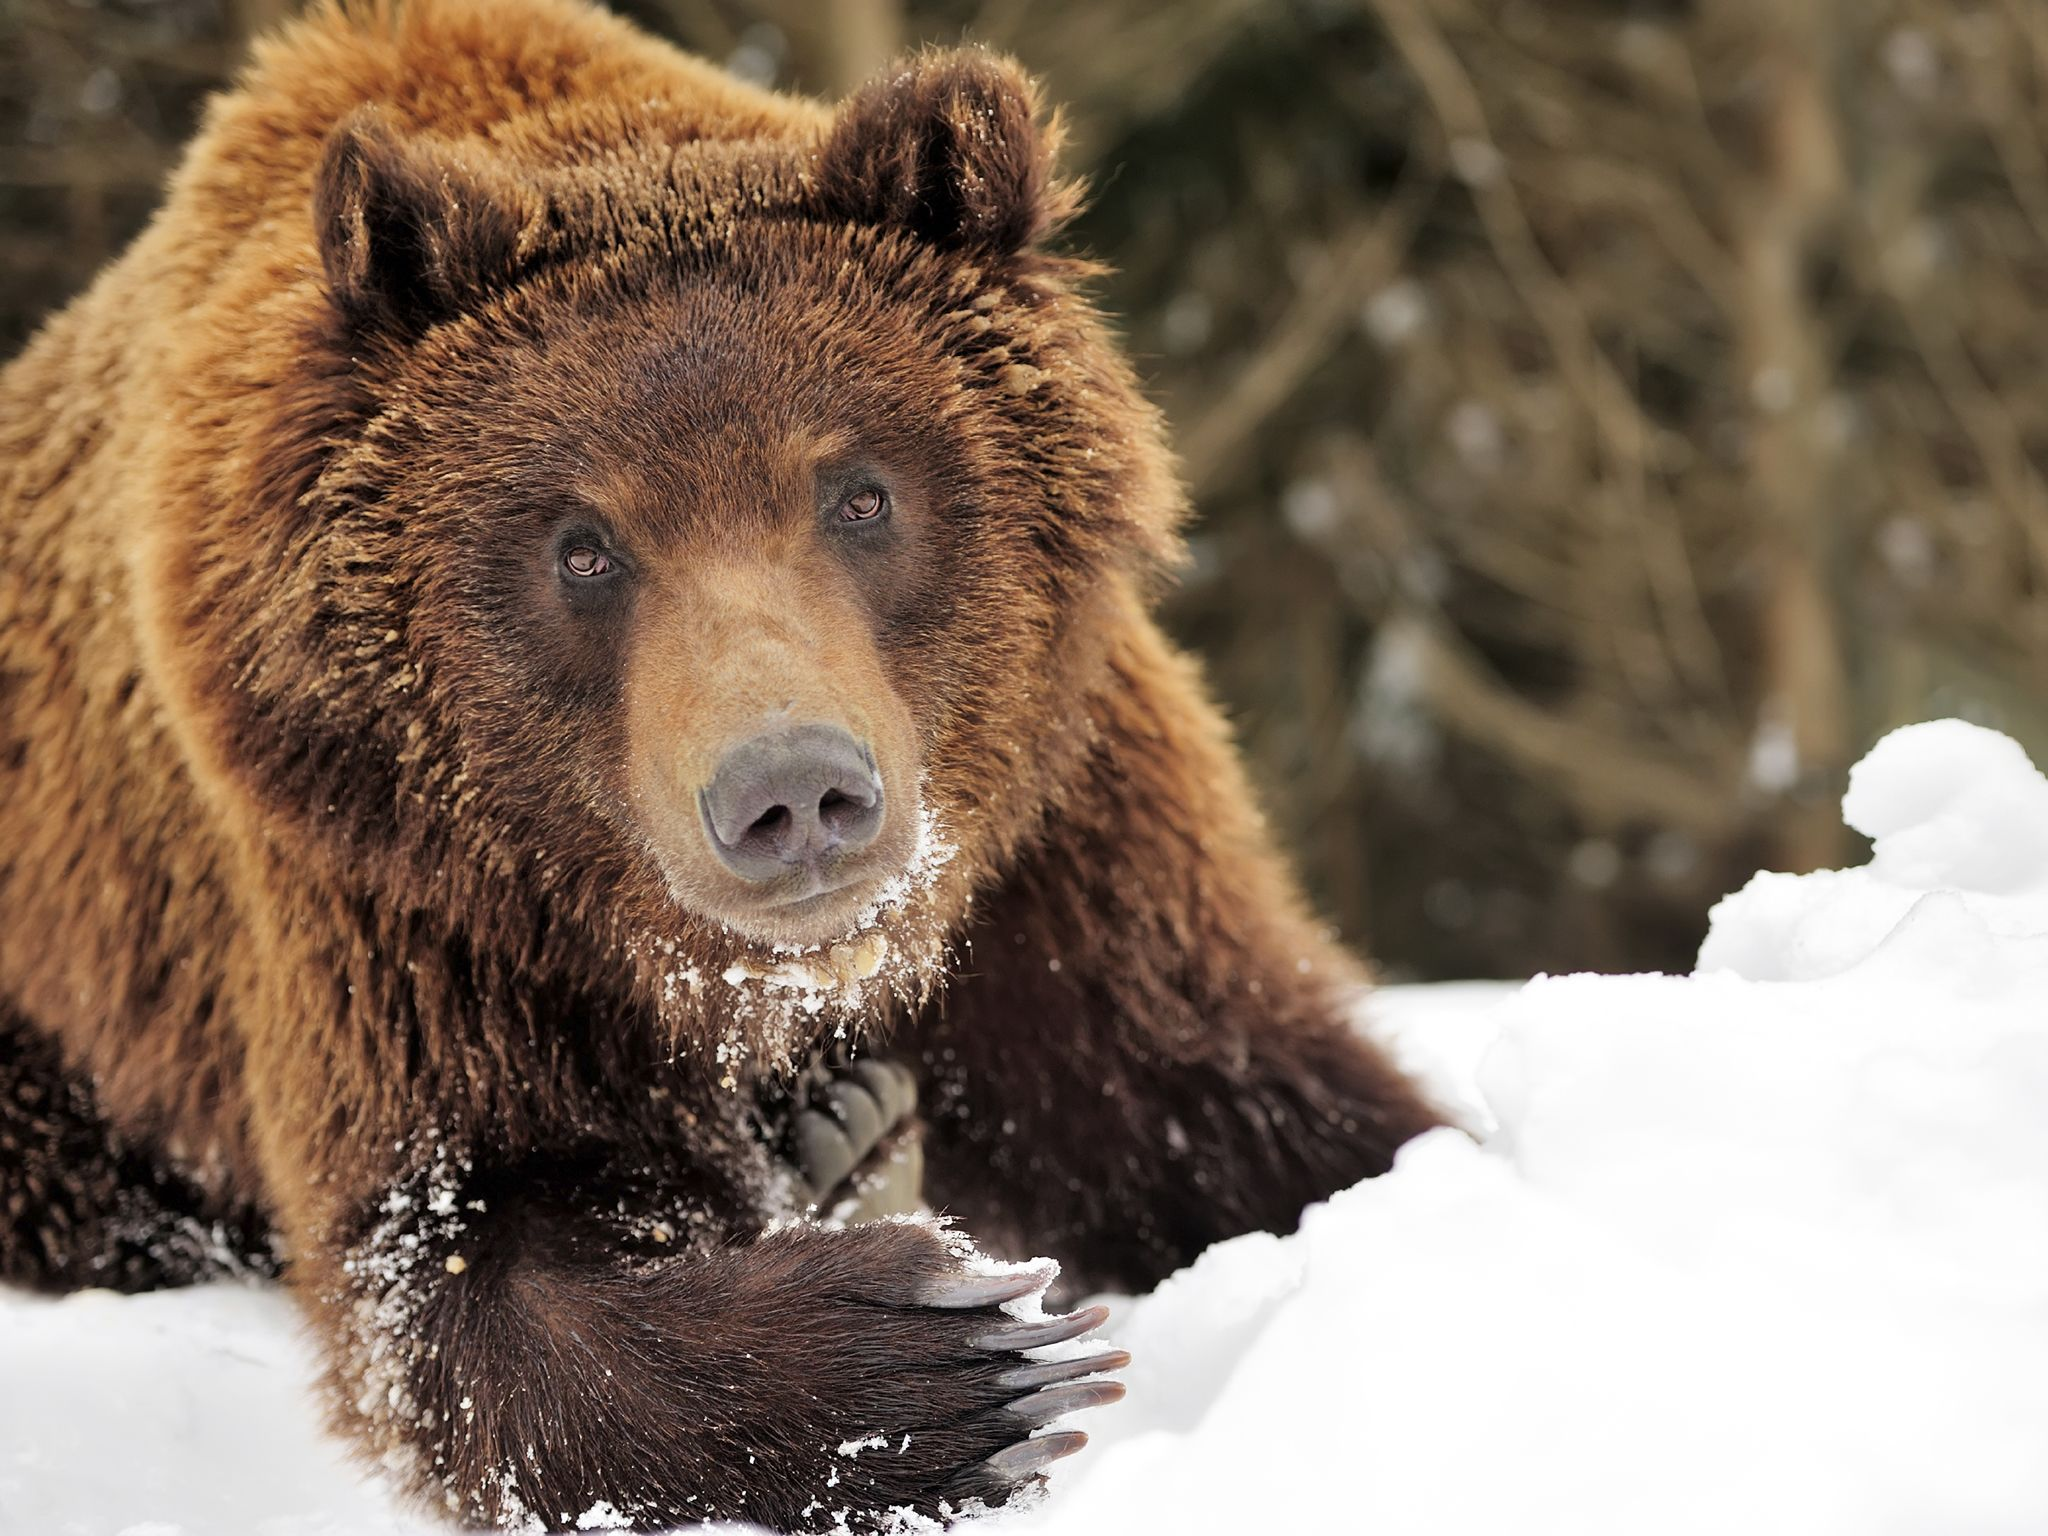 A wild brown bear in a winter forest. This image is from Winter Wonderland. [Photo of the day - December 2015]